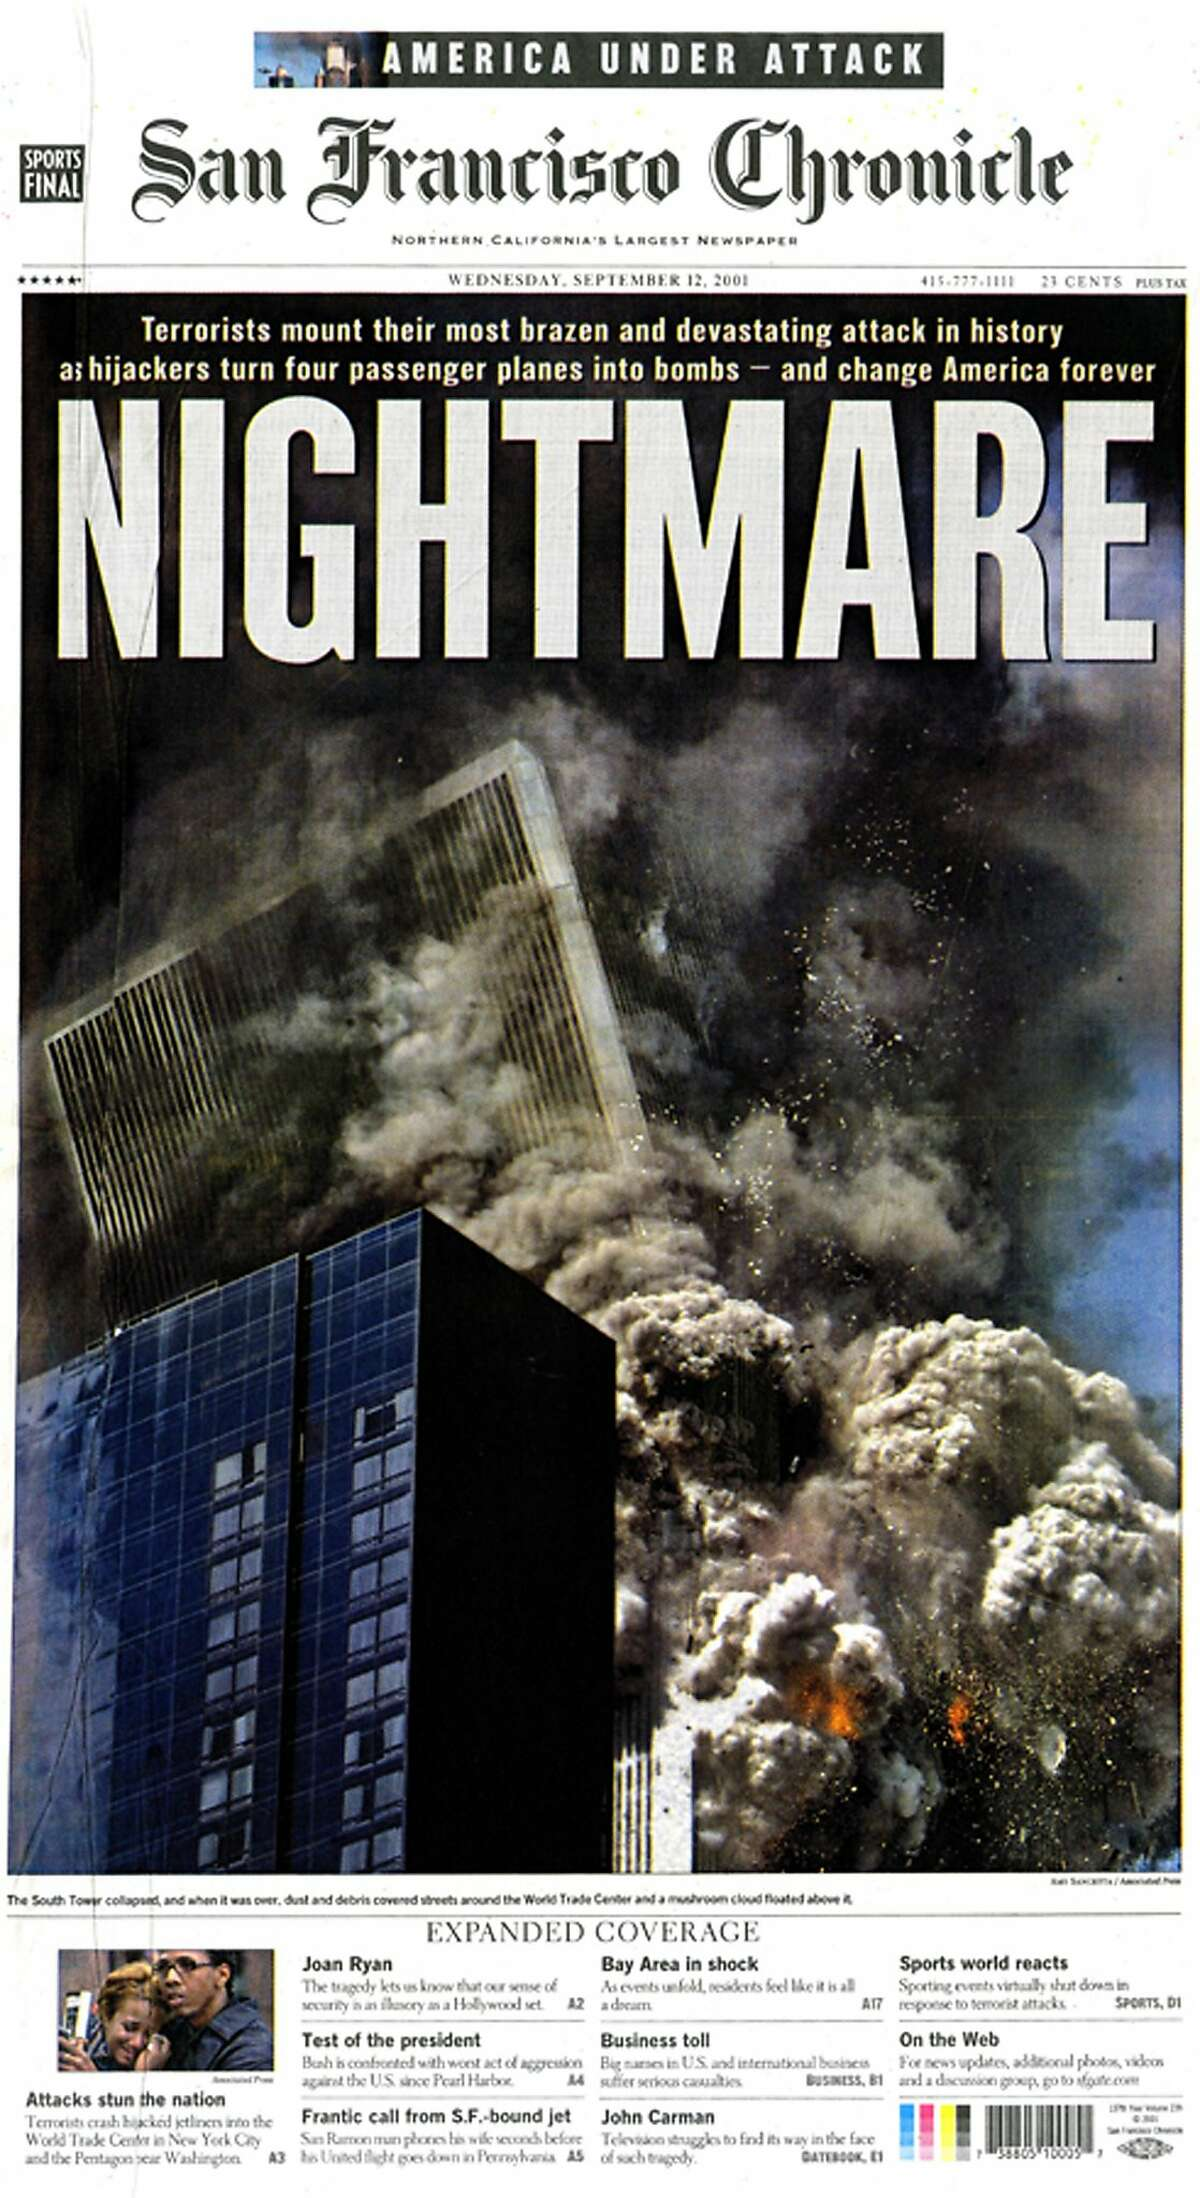 The Chronicle's front page from Sept. 12, 2001, covers the 9/11 attacks.